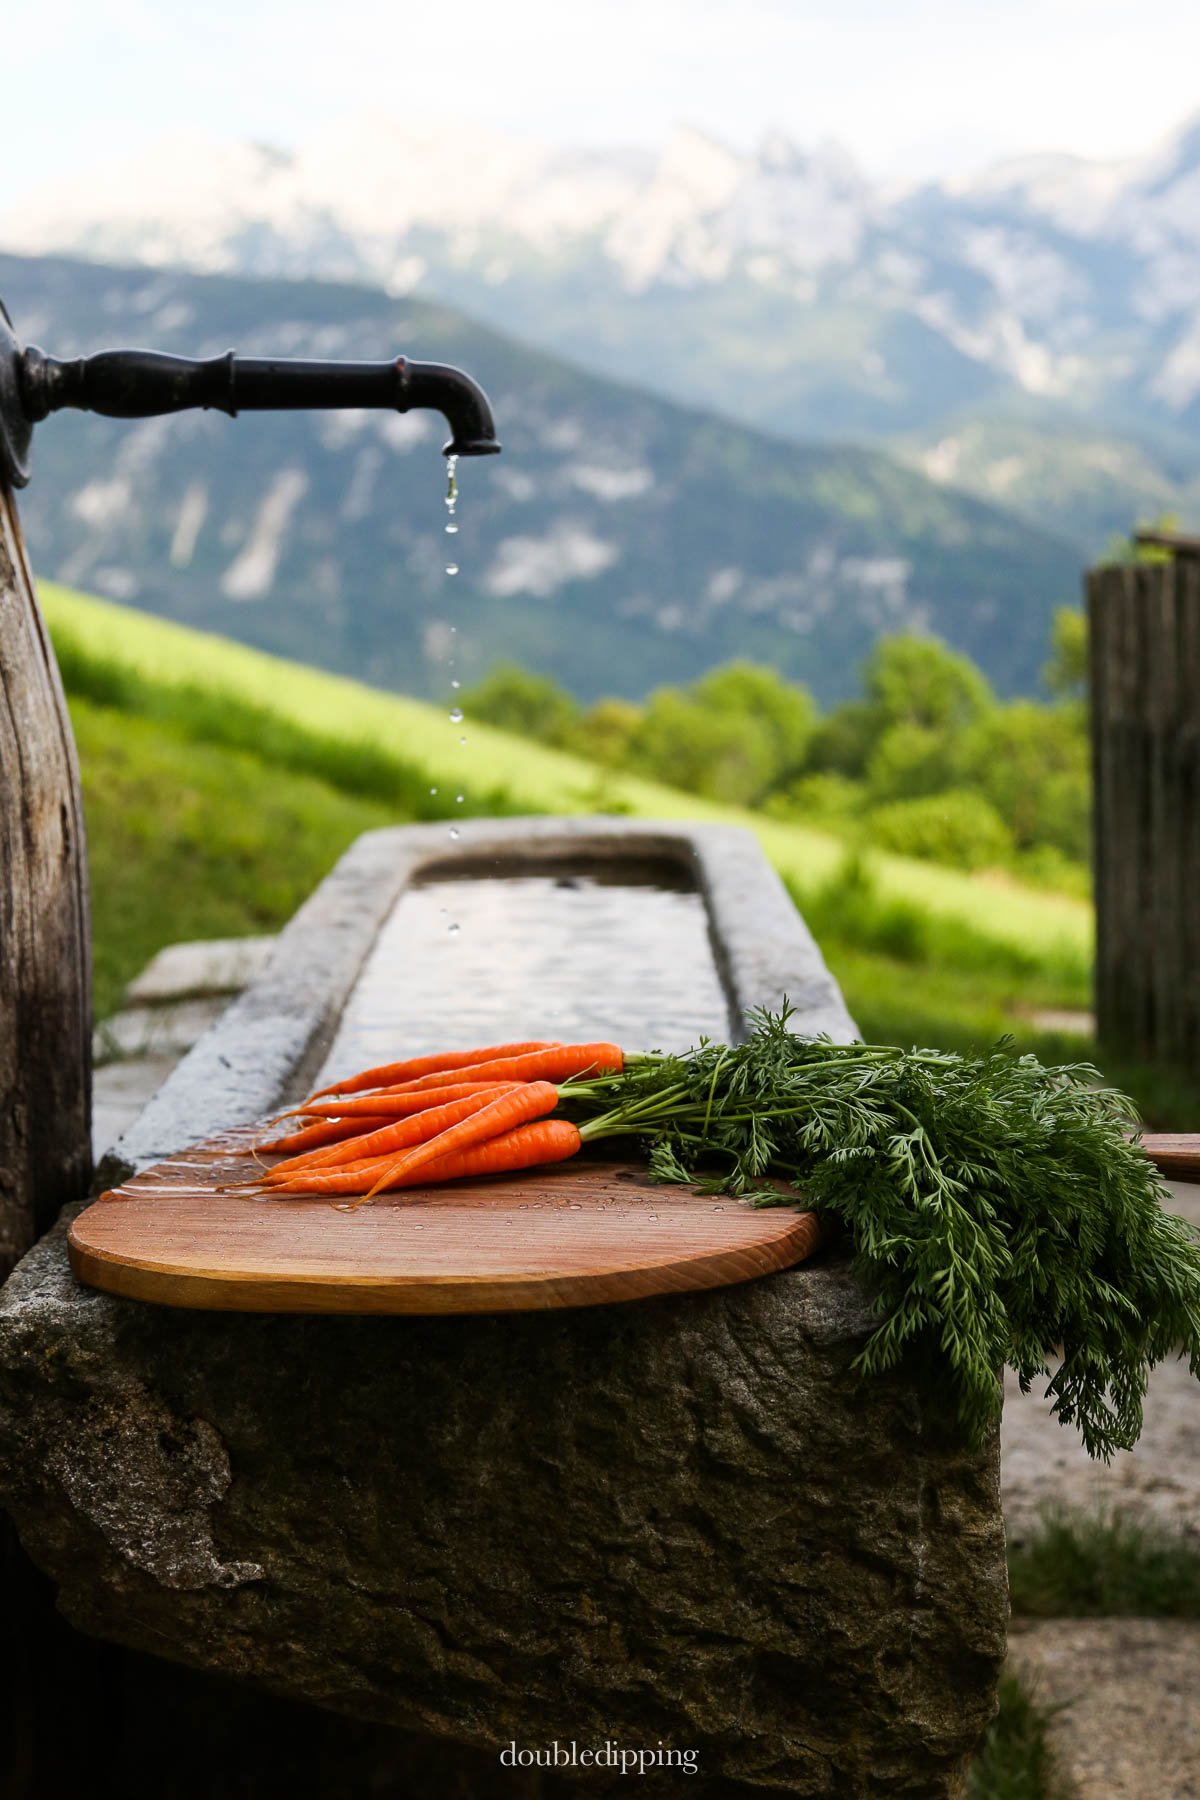 Fountain water from the mountaintop wash these young carrots fresh from the garden